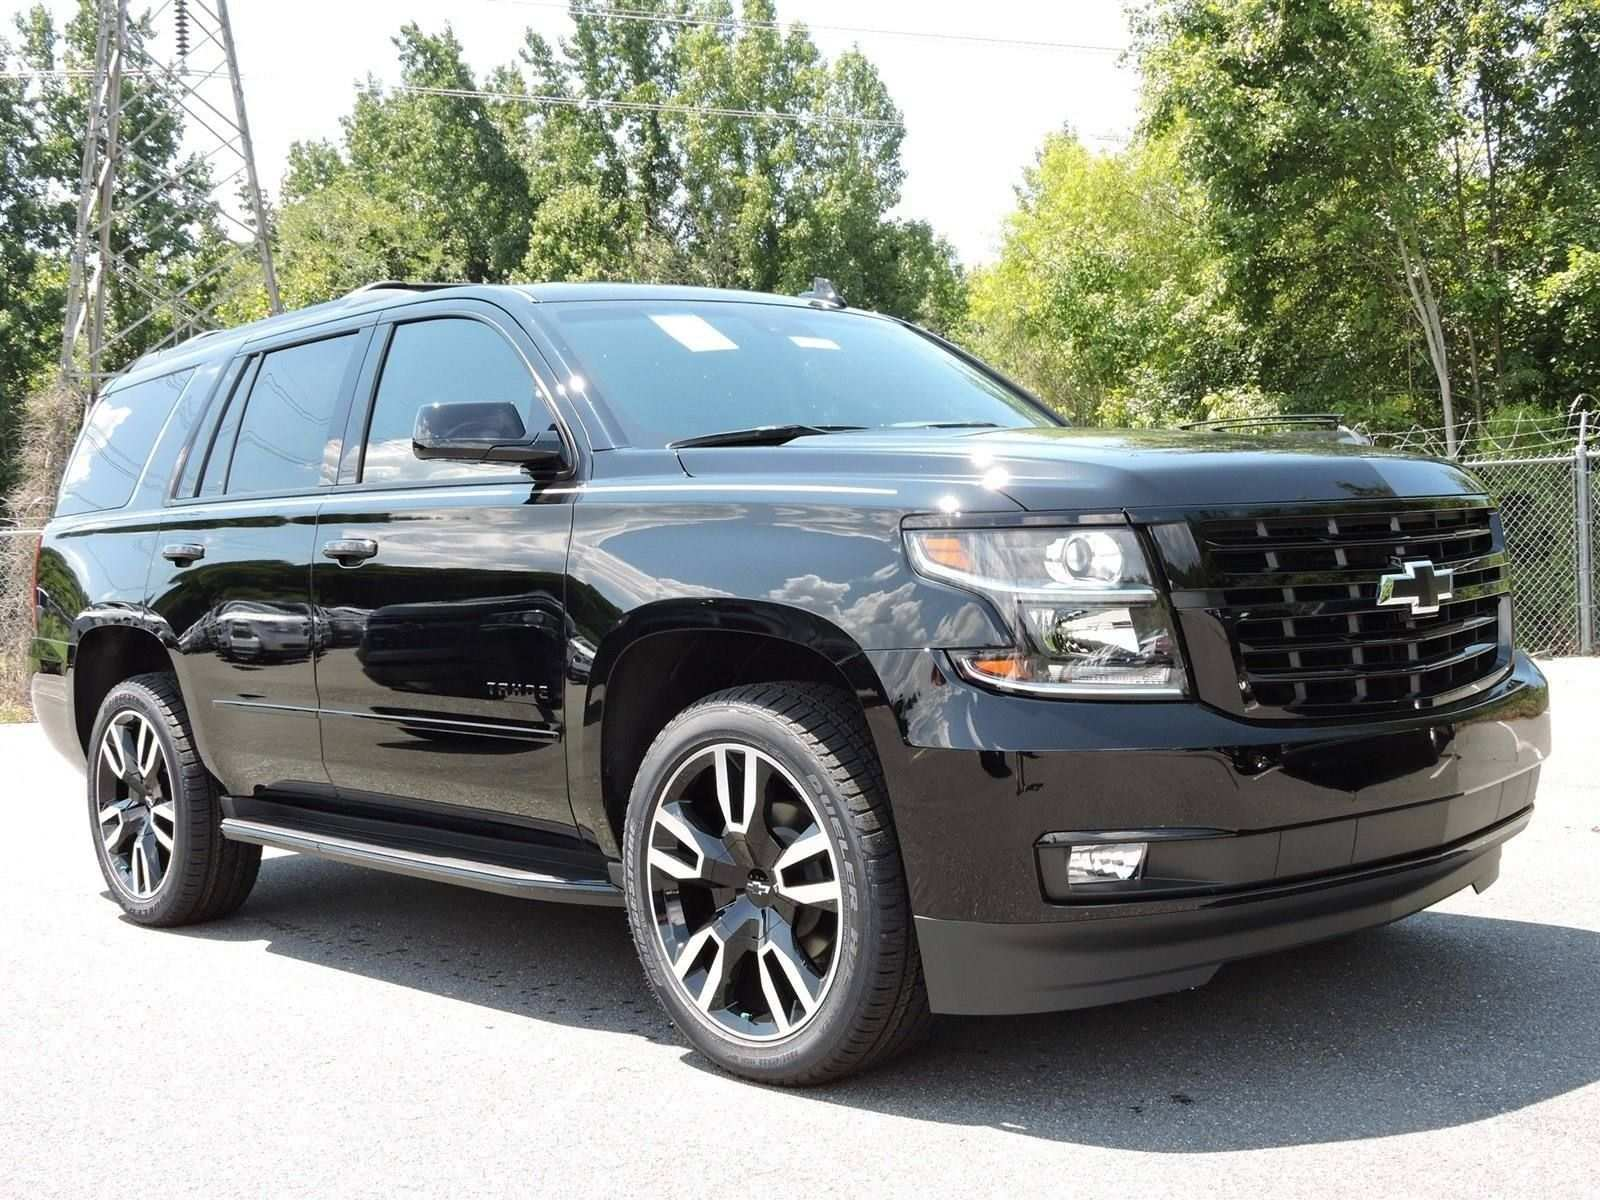 47 New 2020 Chevy Tahoe Z71 Ss Price And Release Date